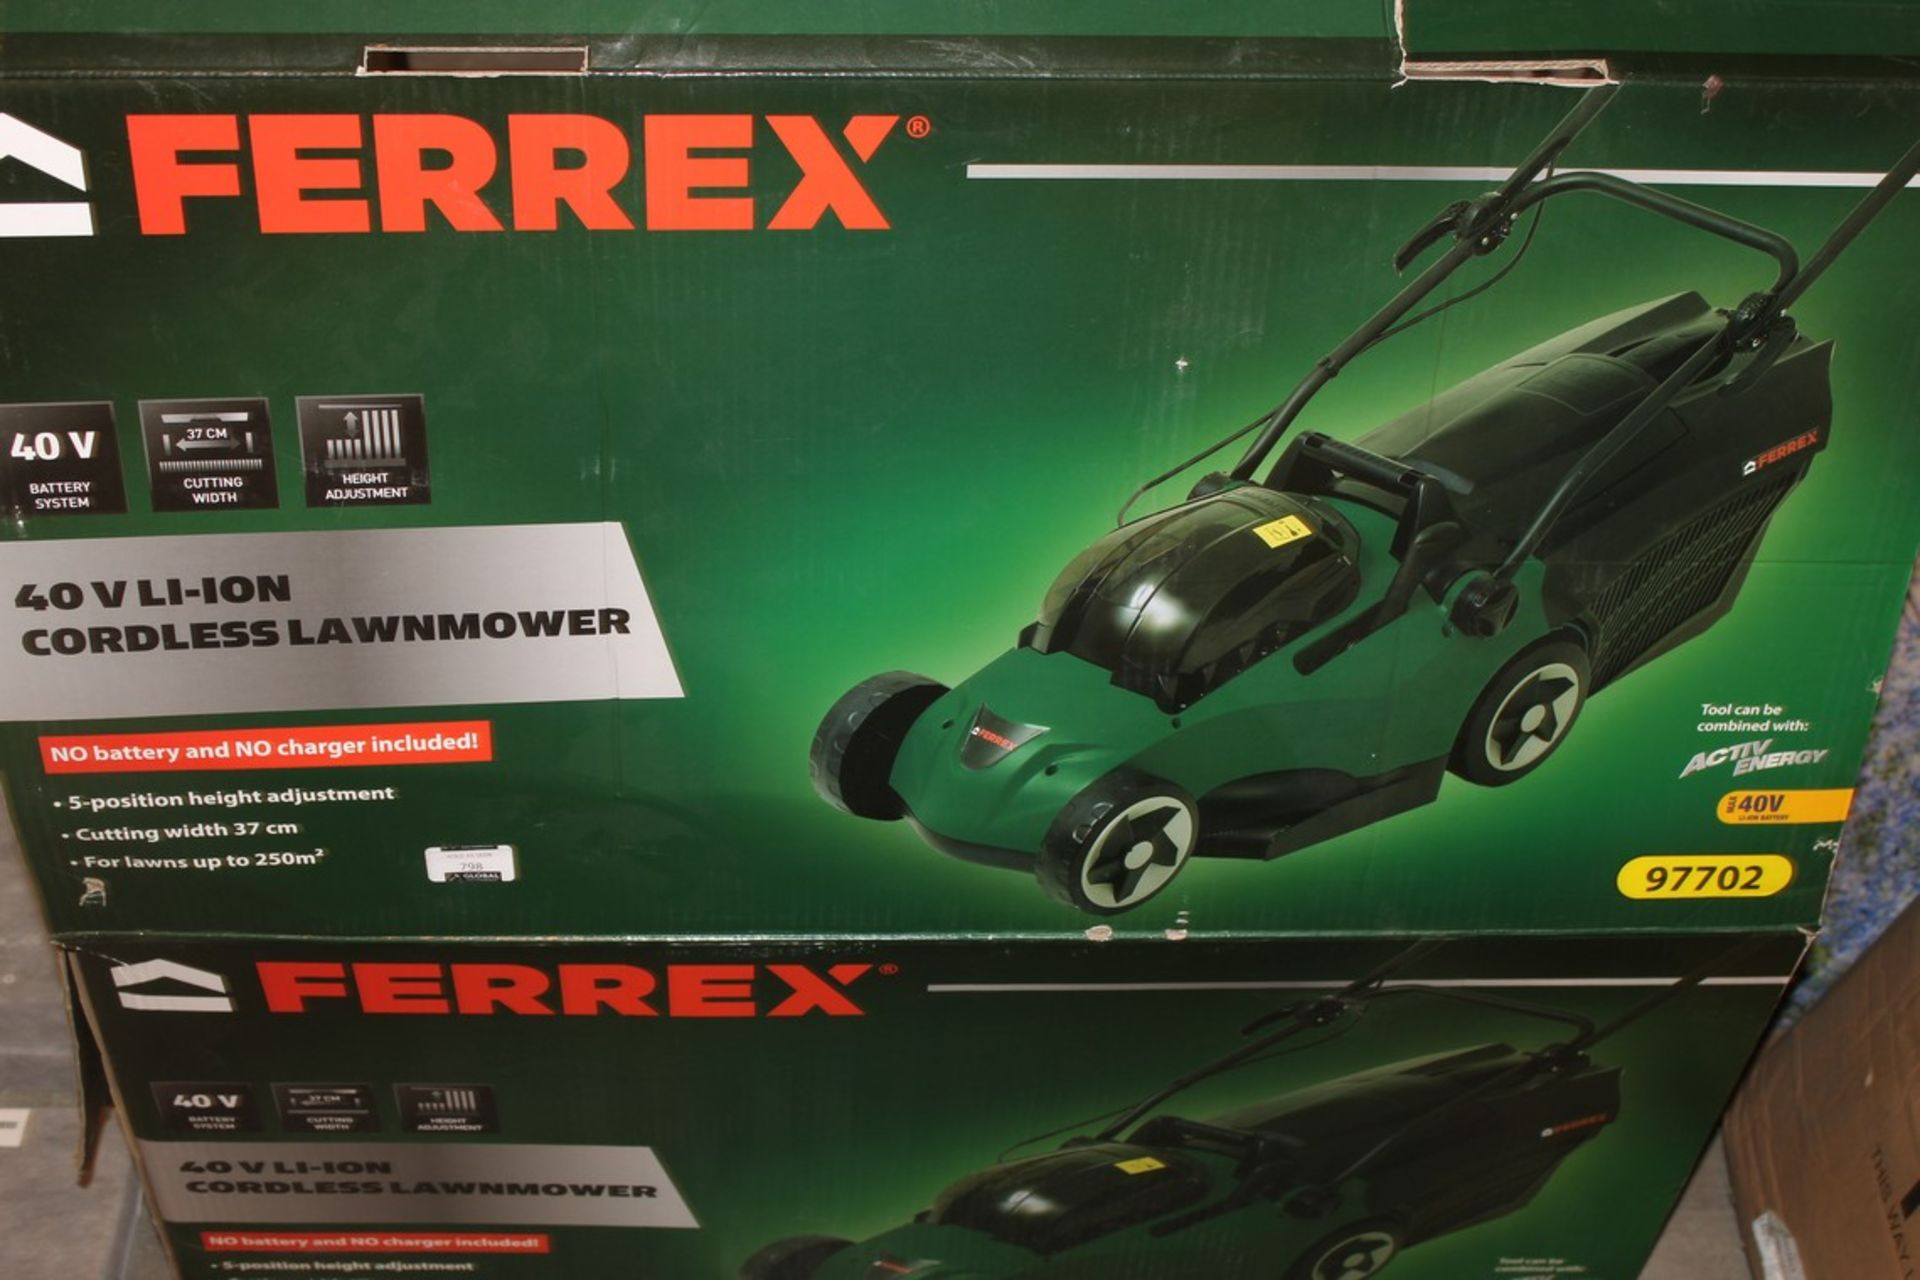 Lot 798 - Boxed Ferrex 40 Volt Lithium Iron Cordless Lawnmower RRP £80 (Pictures Are For Illustration